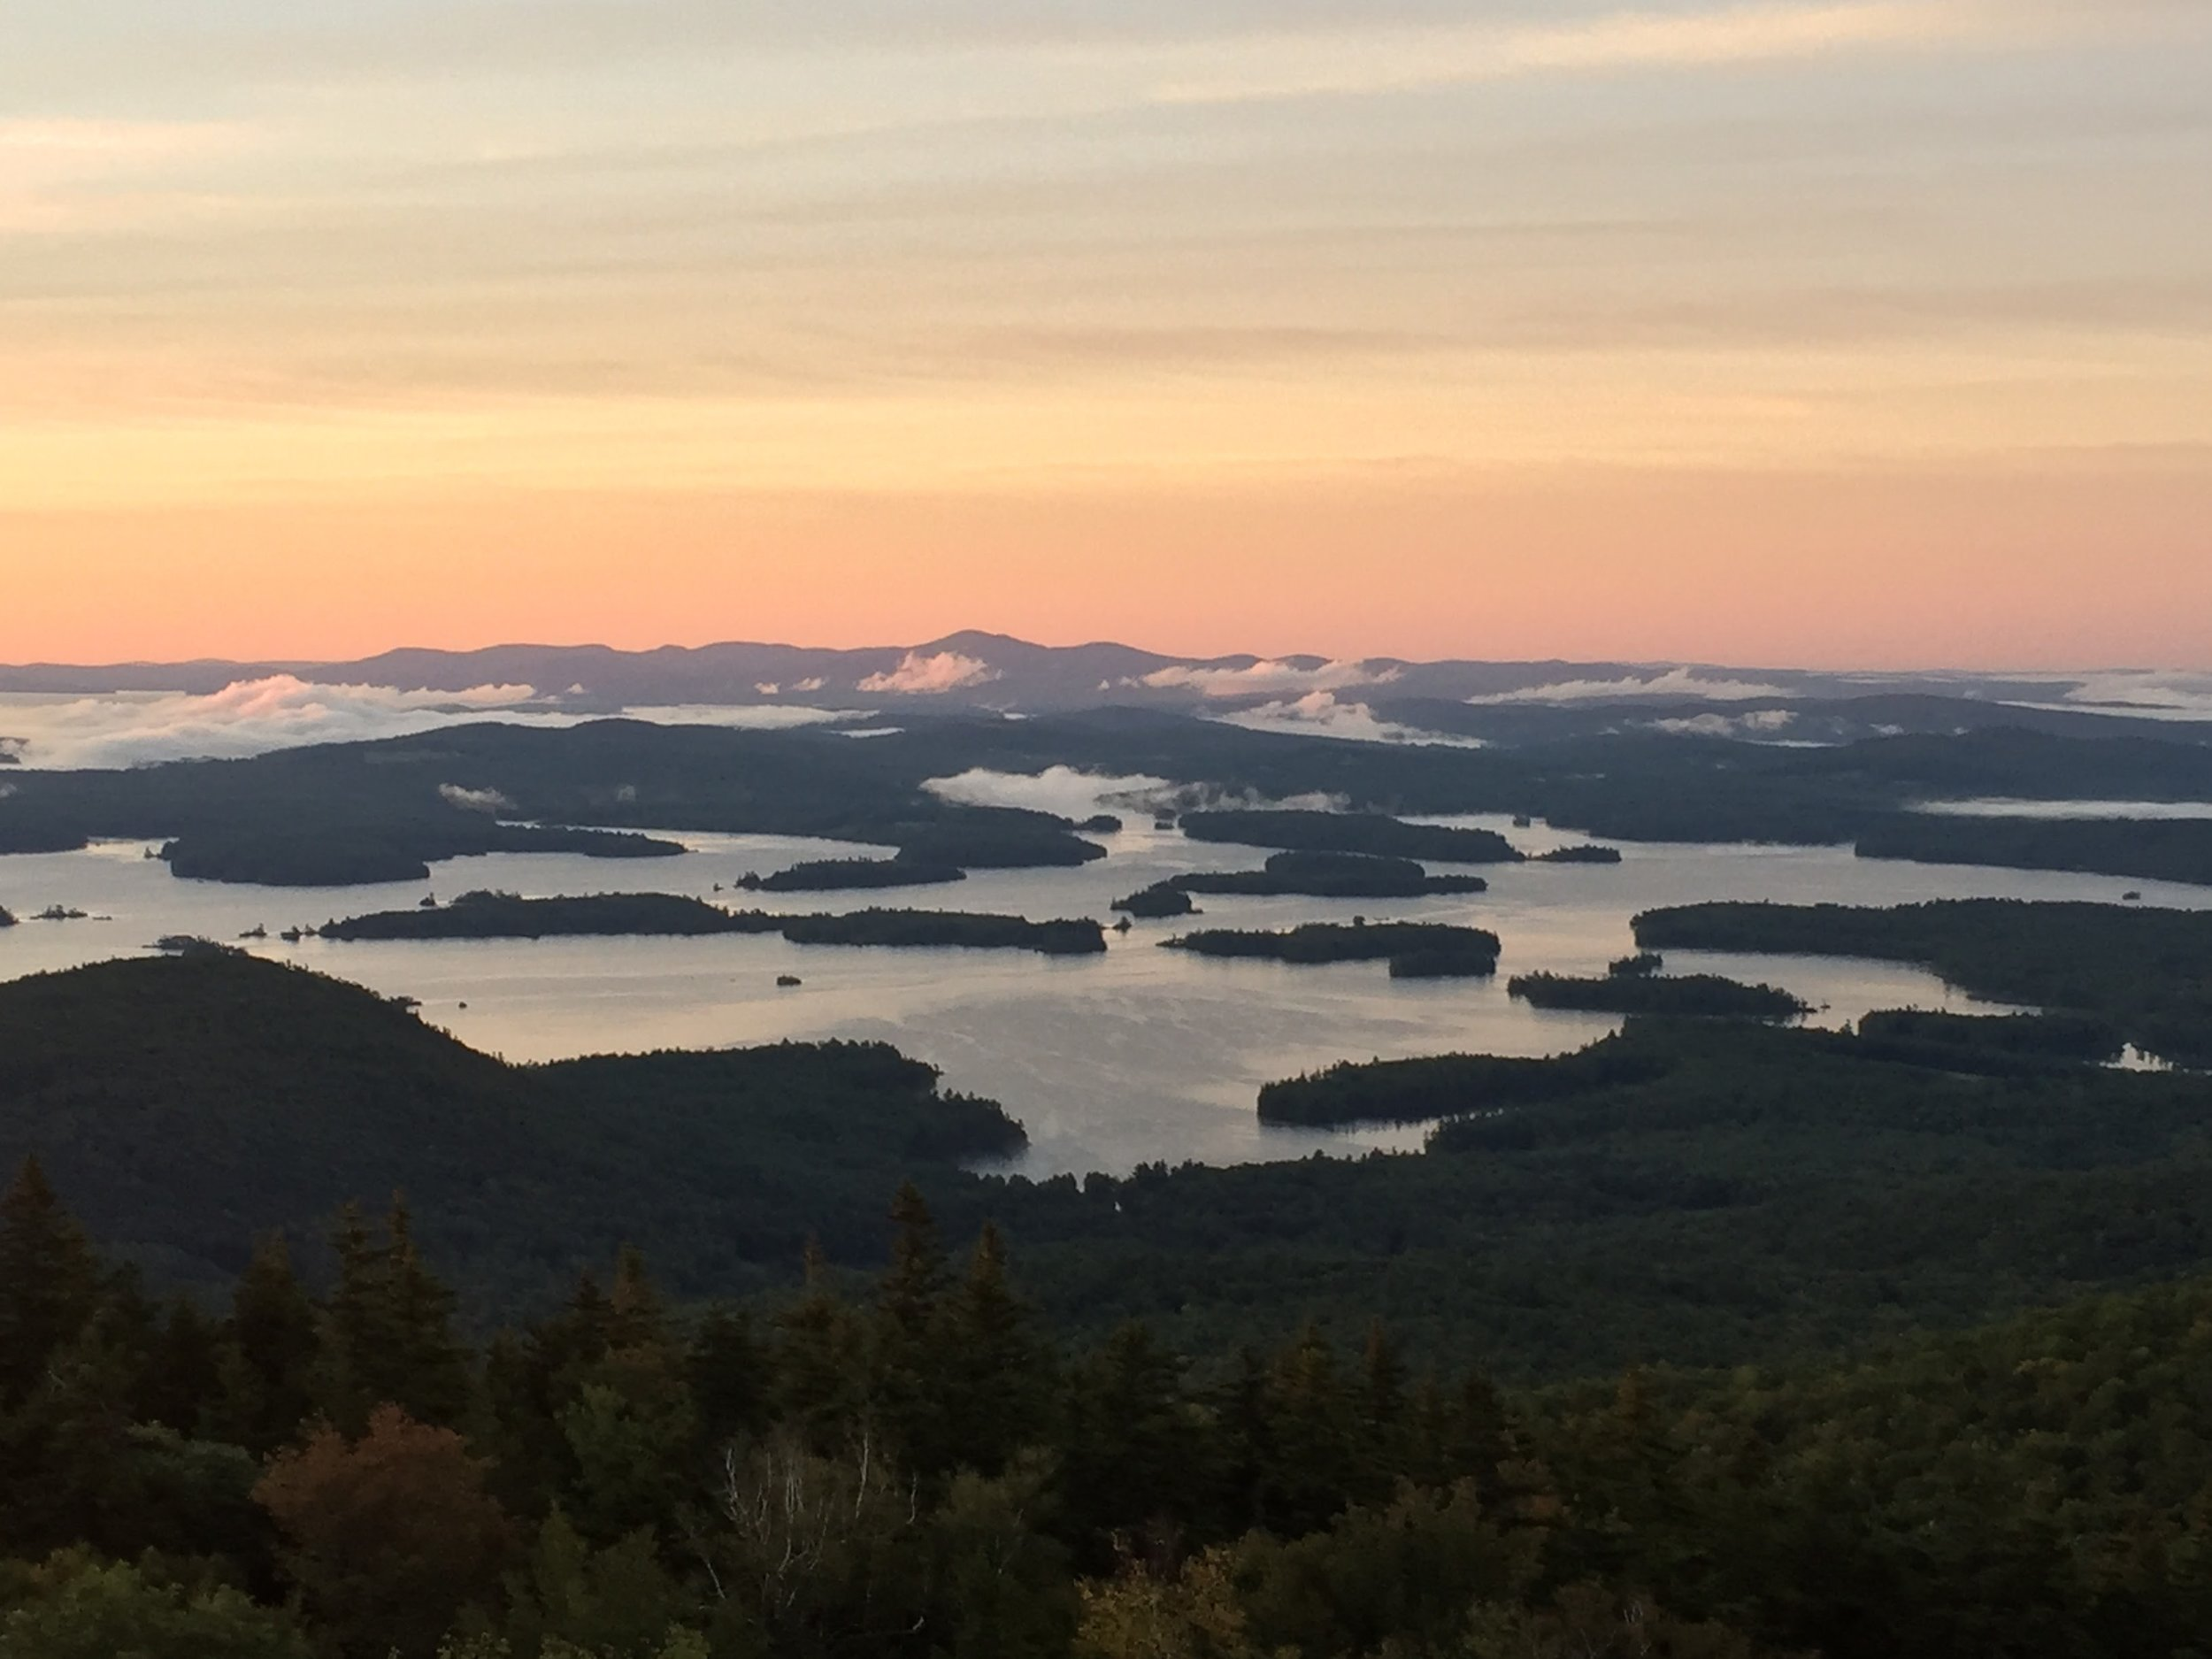 Located in the heart of the Lakes Region - View of Squam Lake- 10 minutes from our facility in Holderness, New Hampshire.